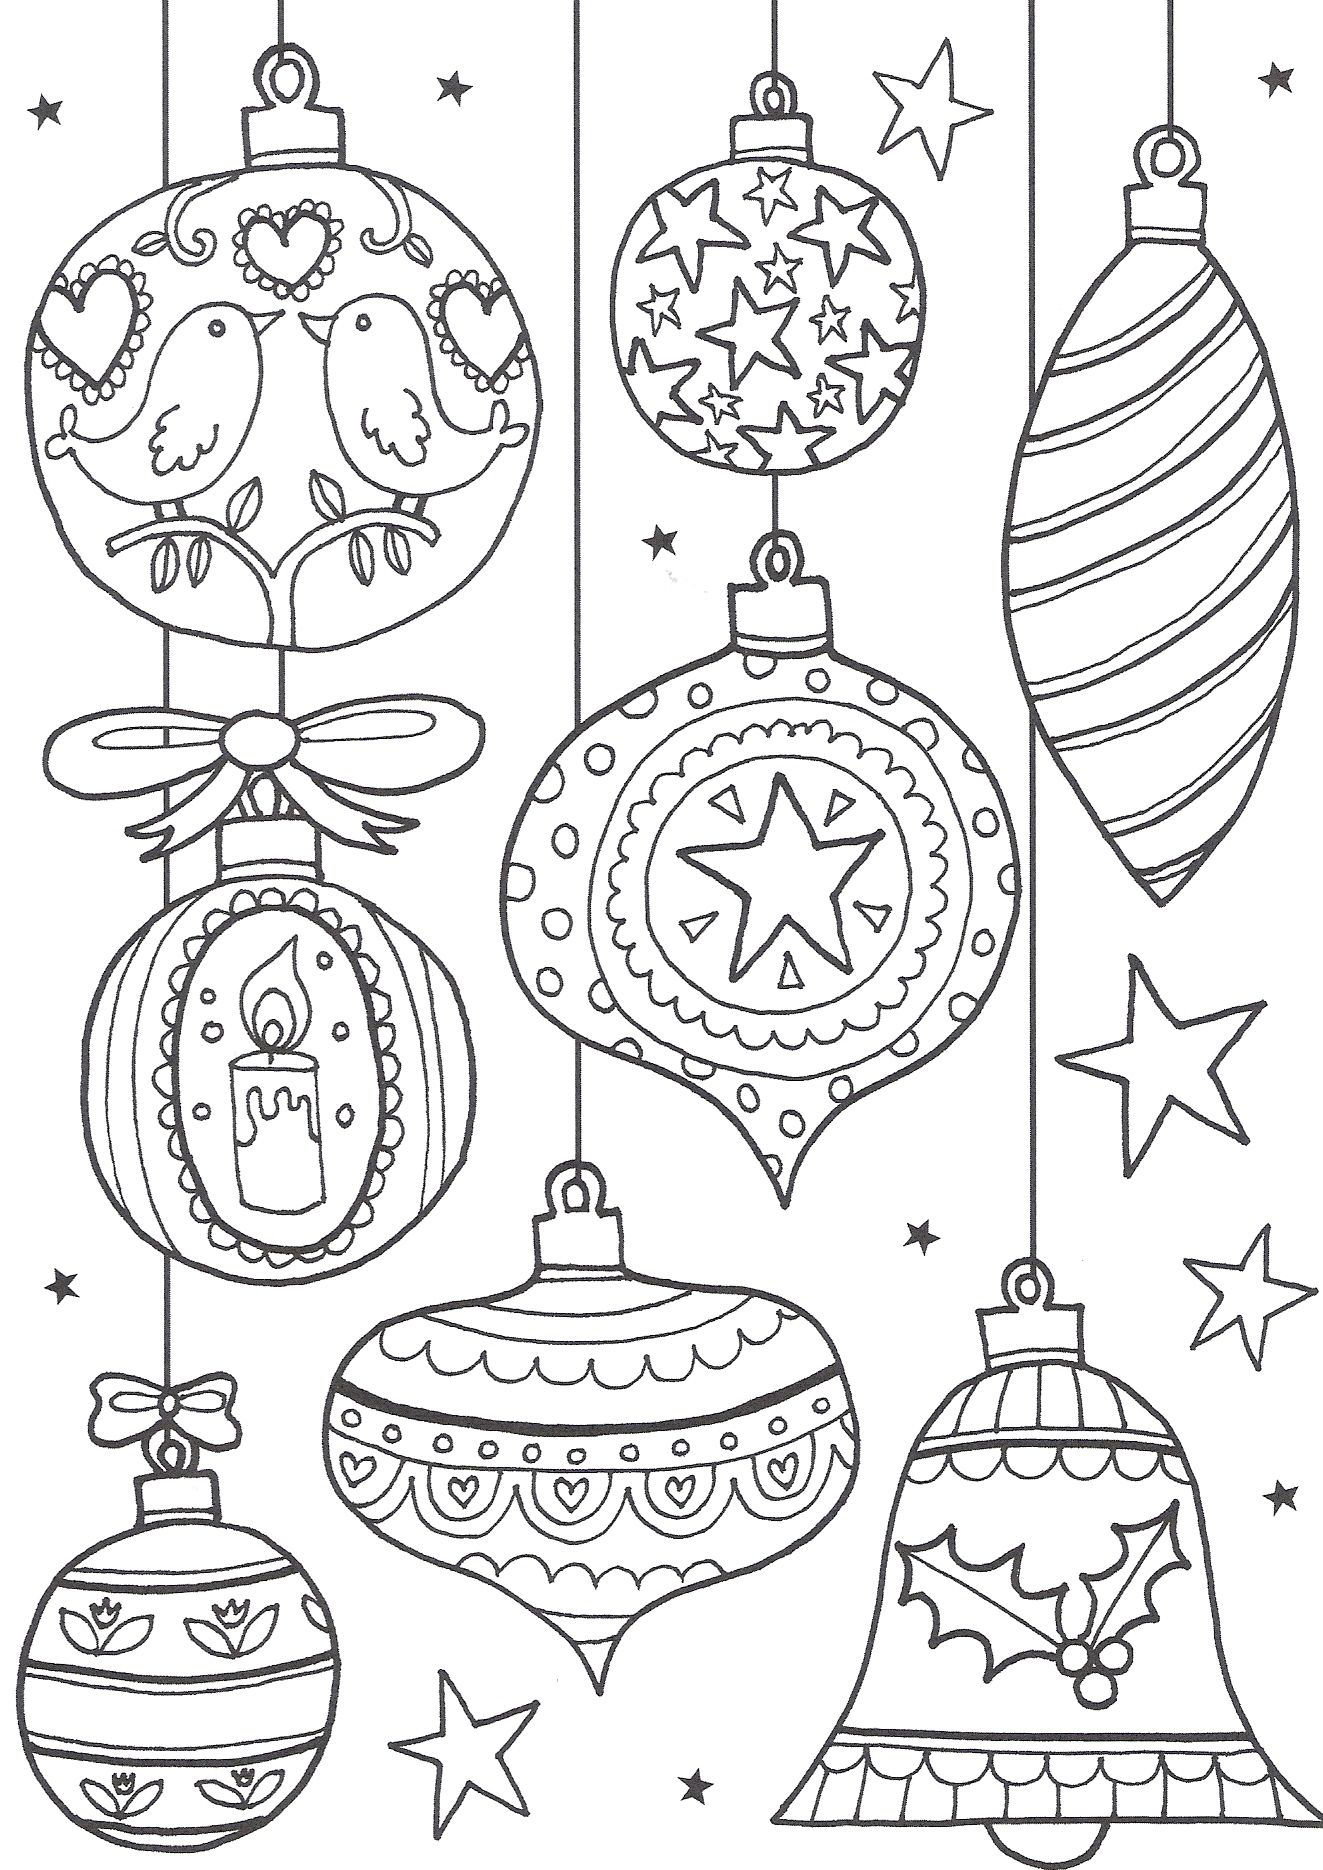 Christmas Colouring Pages To Print For Free With Adults The Ultimate Roundup